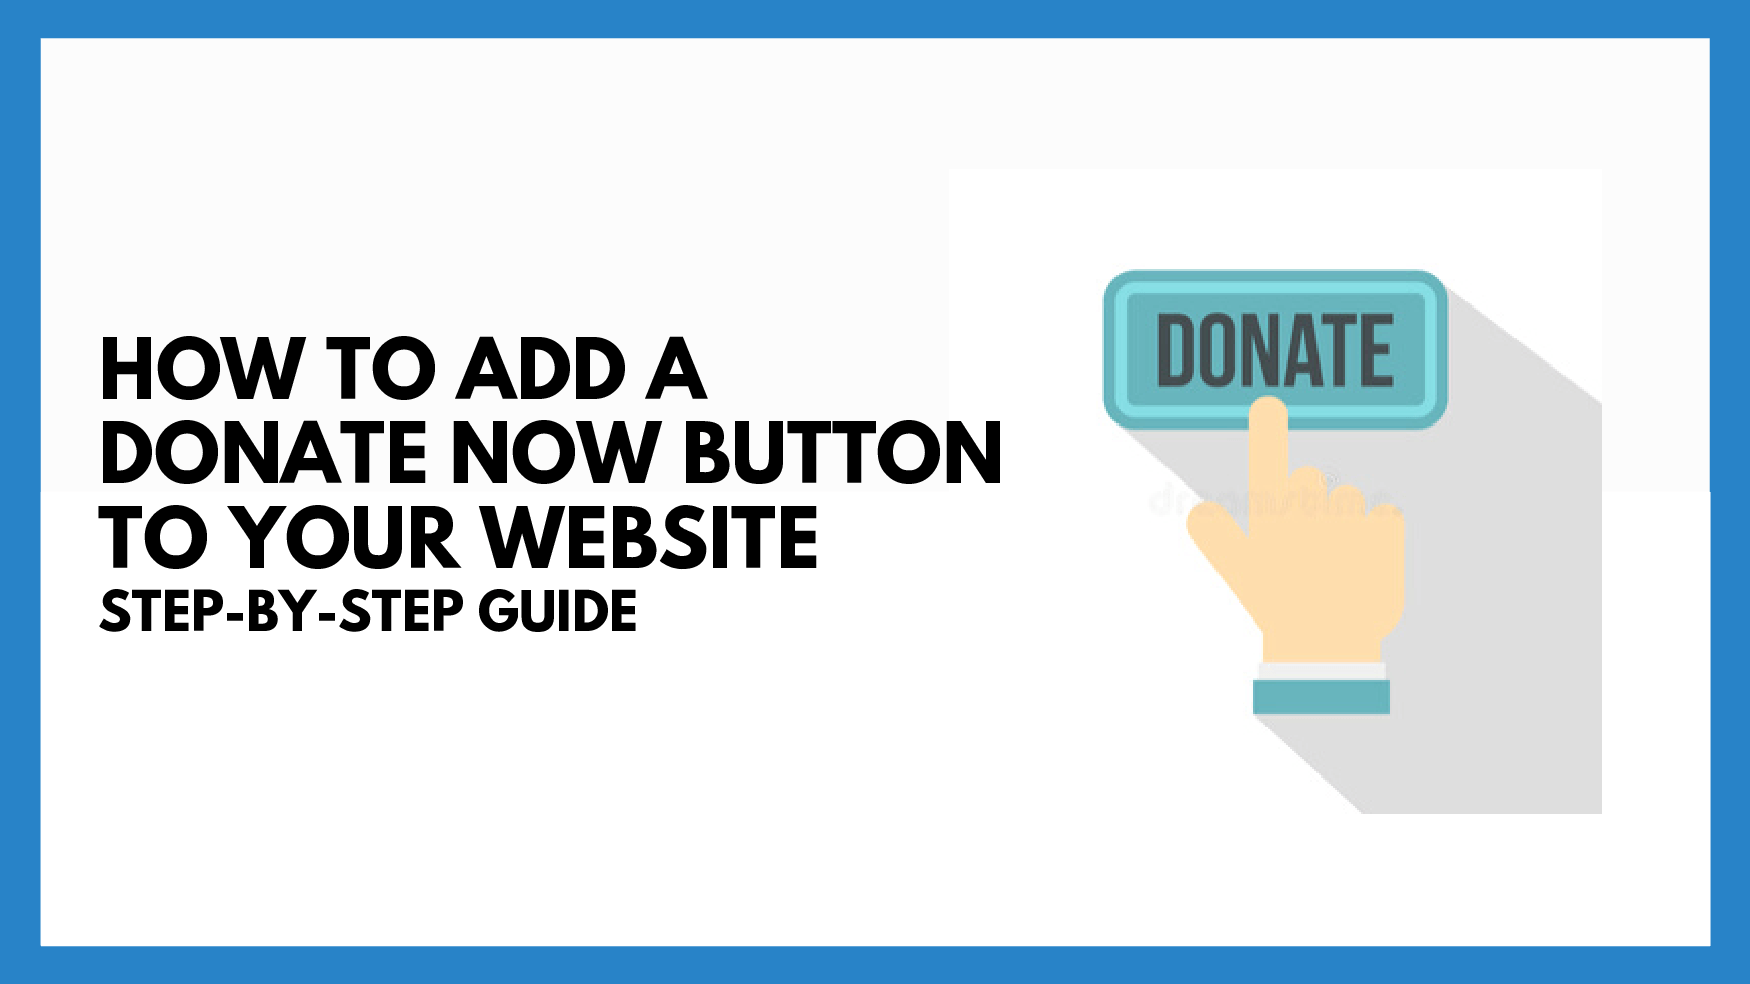 How To Add A Donate Now Button To Your Website | Step-By-Step Guide